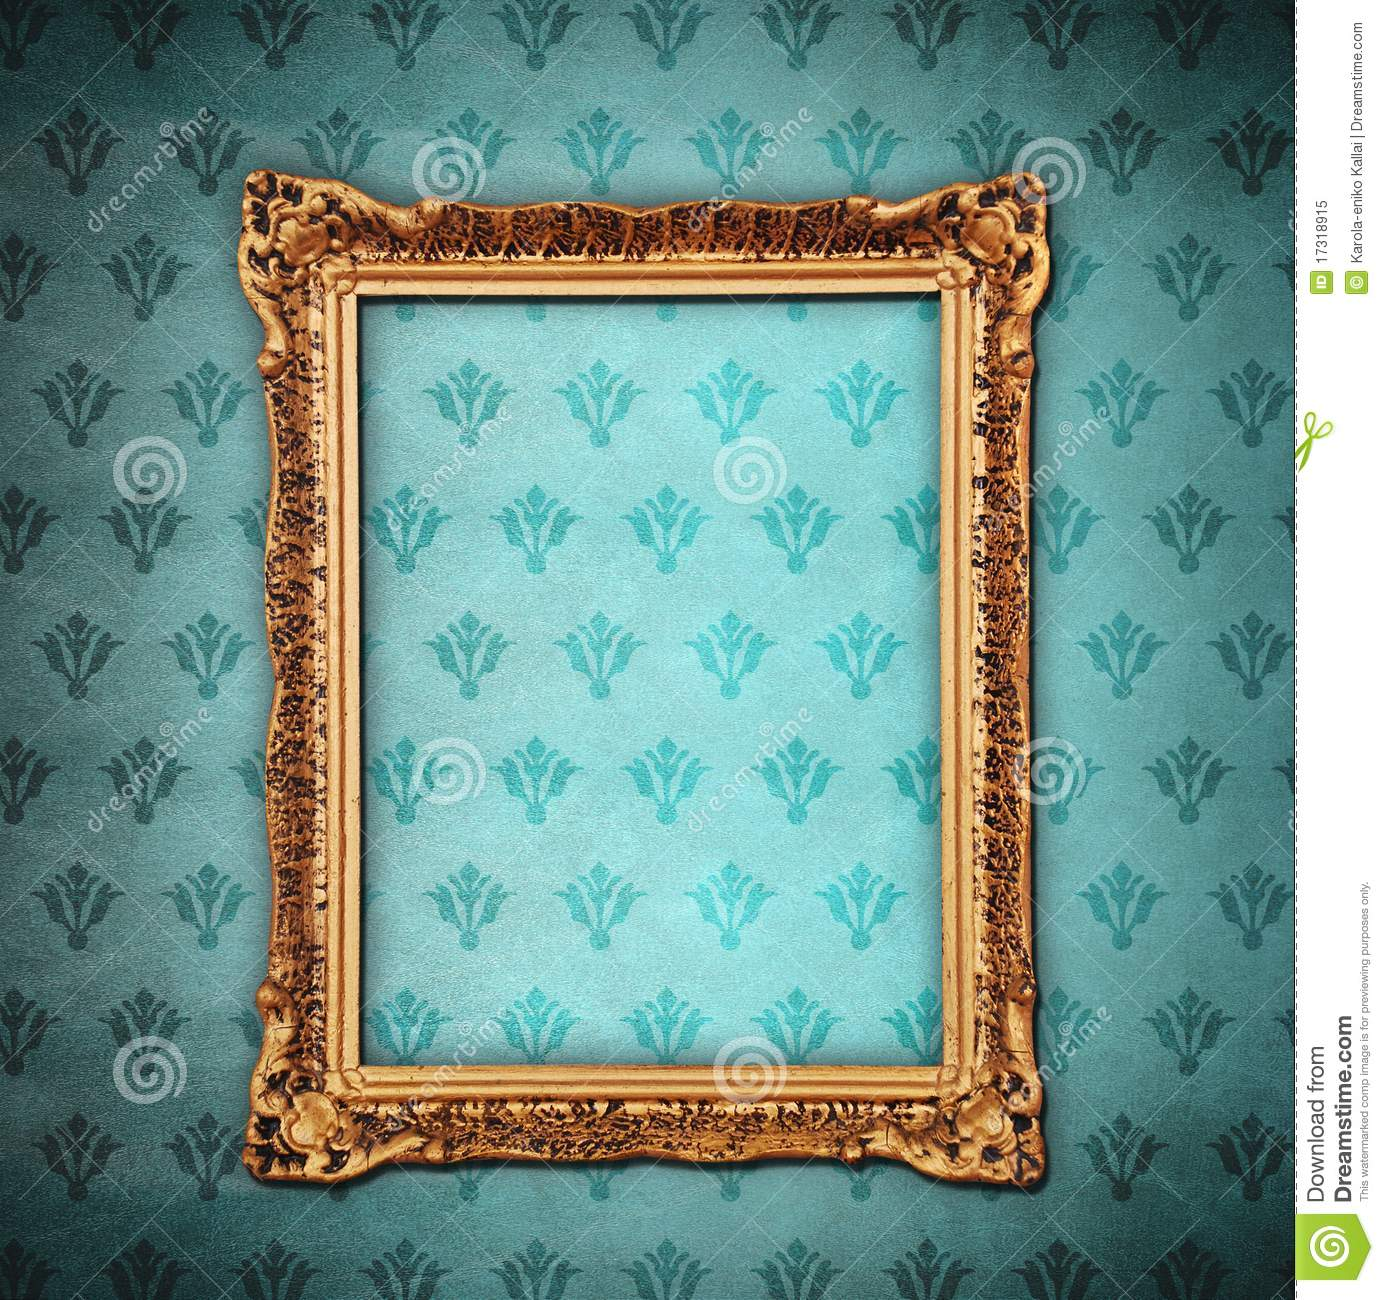 Golden Frame Over Grunge Wallpaper Royalty Free Stock Photo - Image ...